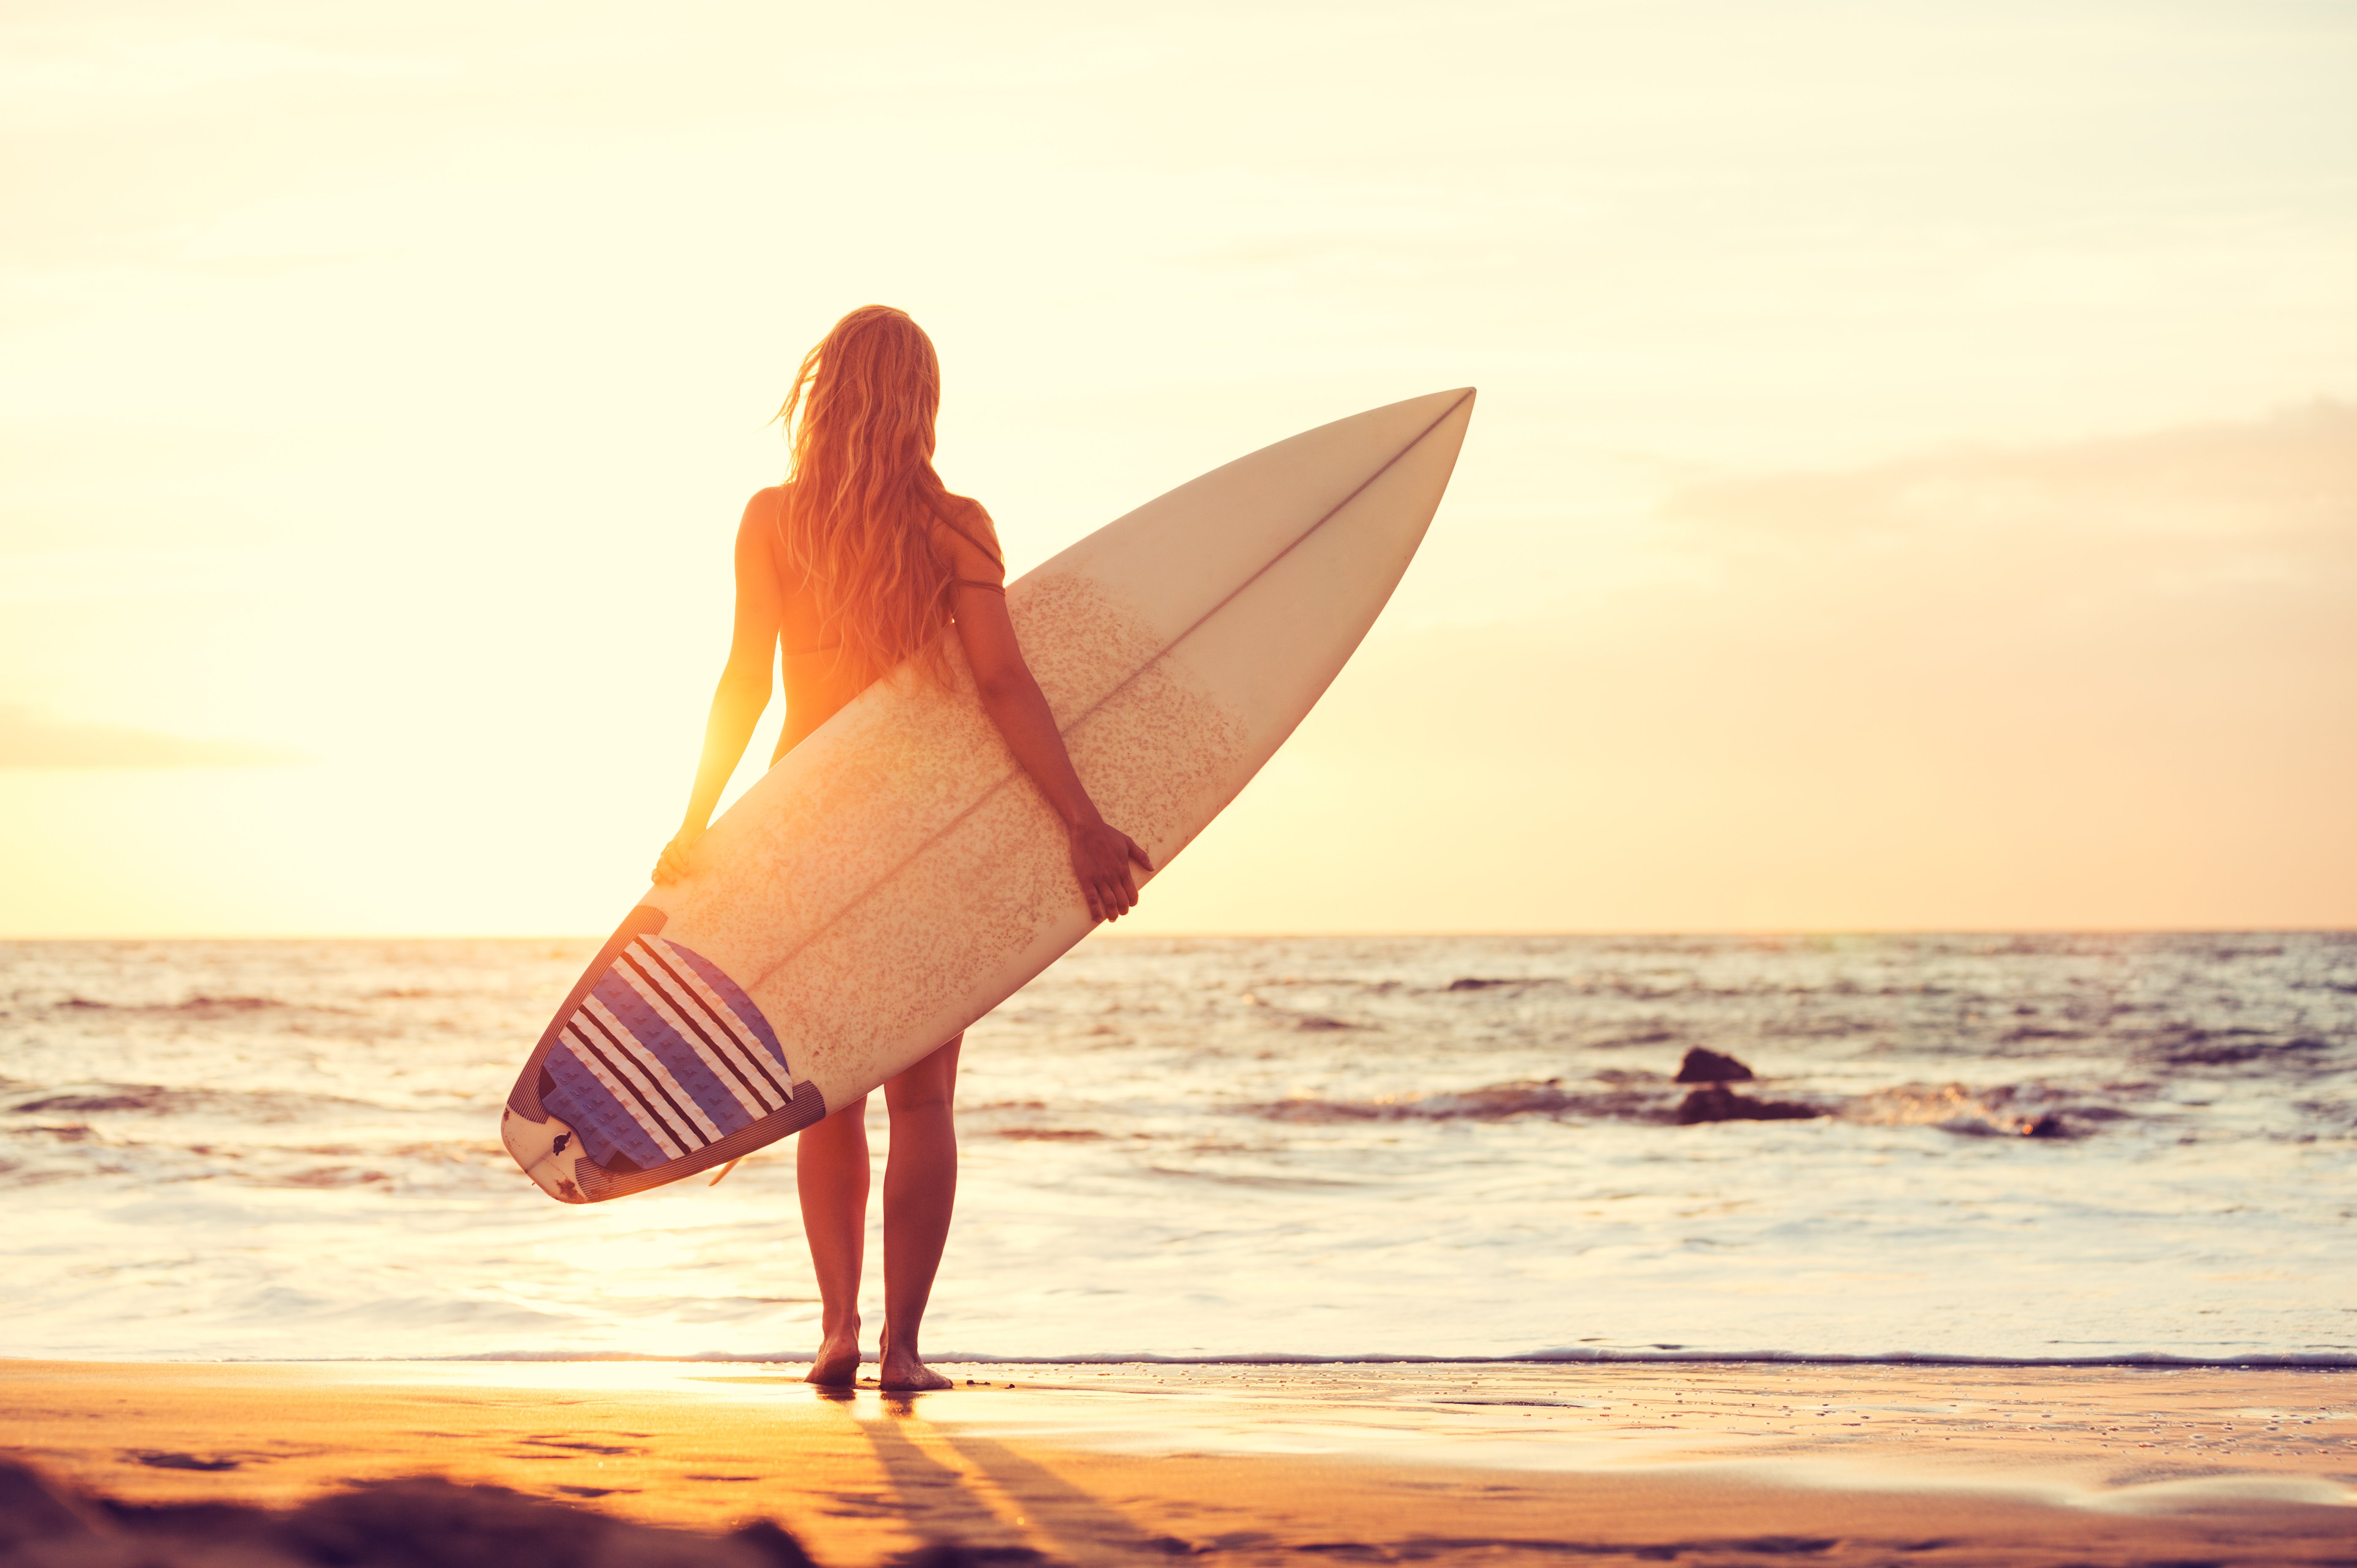 Beautiful,Sexy,Surfer,Girl,On,The,Beach,At,Sunset